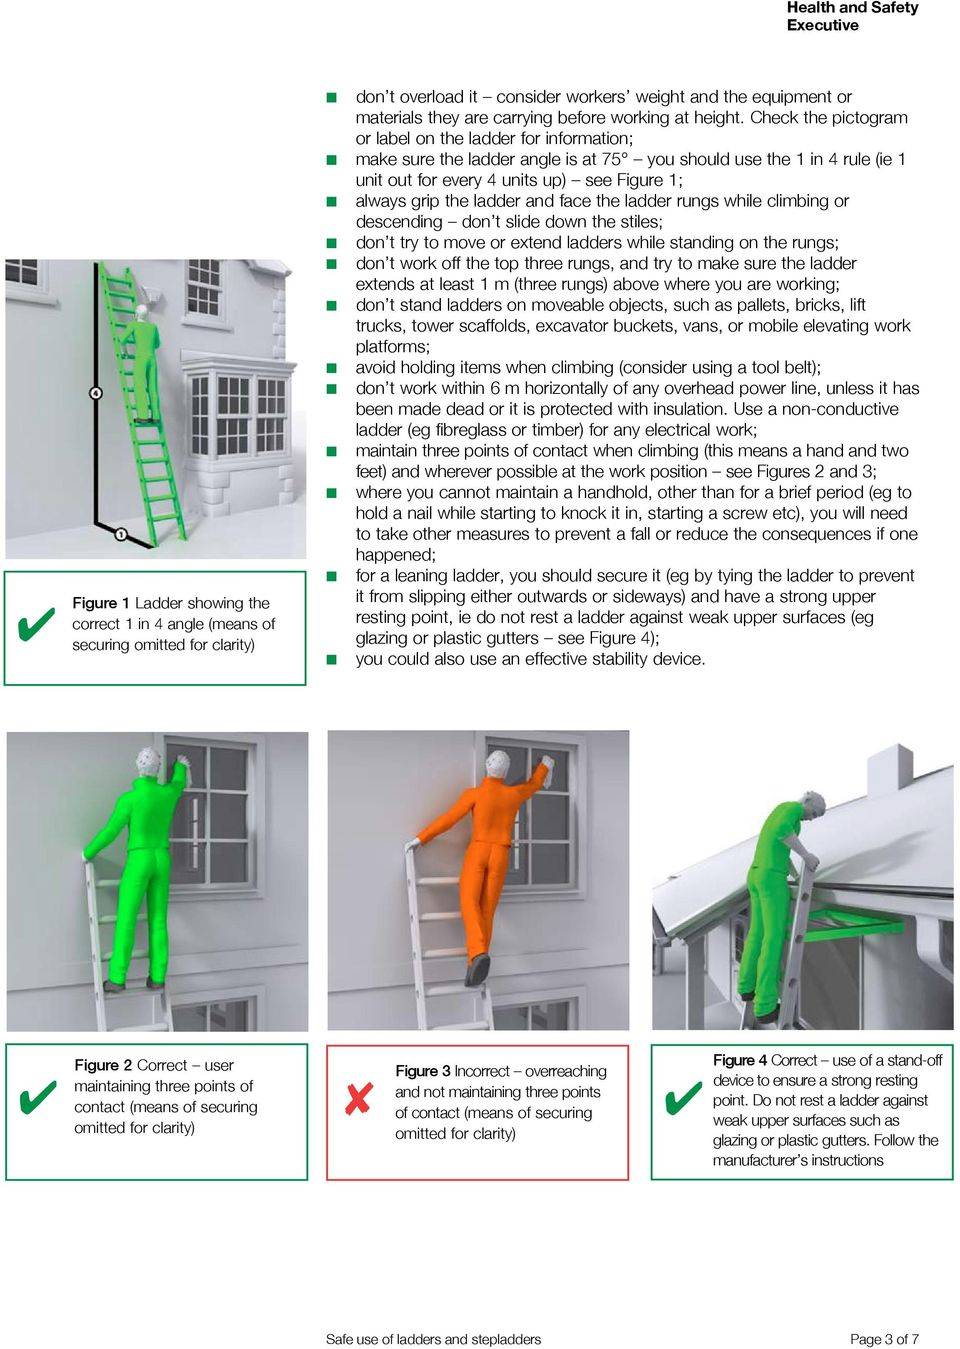 Check the pictogram or label on the ladder for information; make sure the ladder angle is at 75 you should use the 1 in rule (ie 1 unit out for every units up) see Figure 1; always grip the ladder